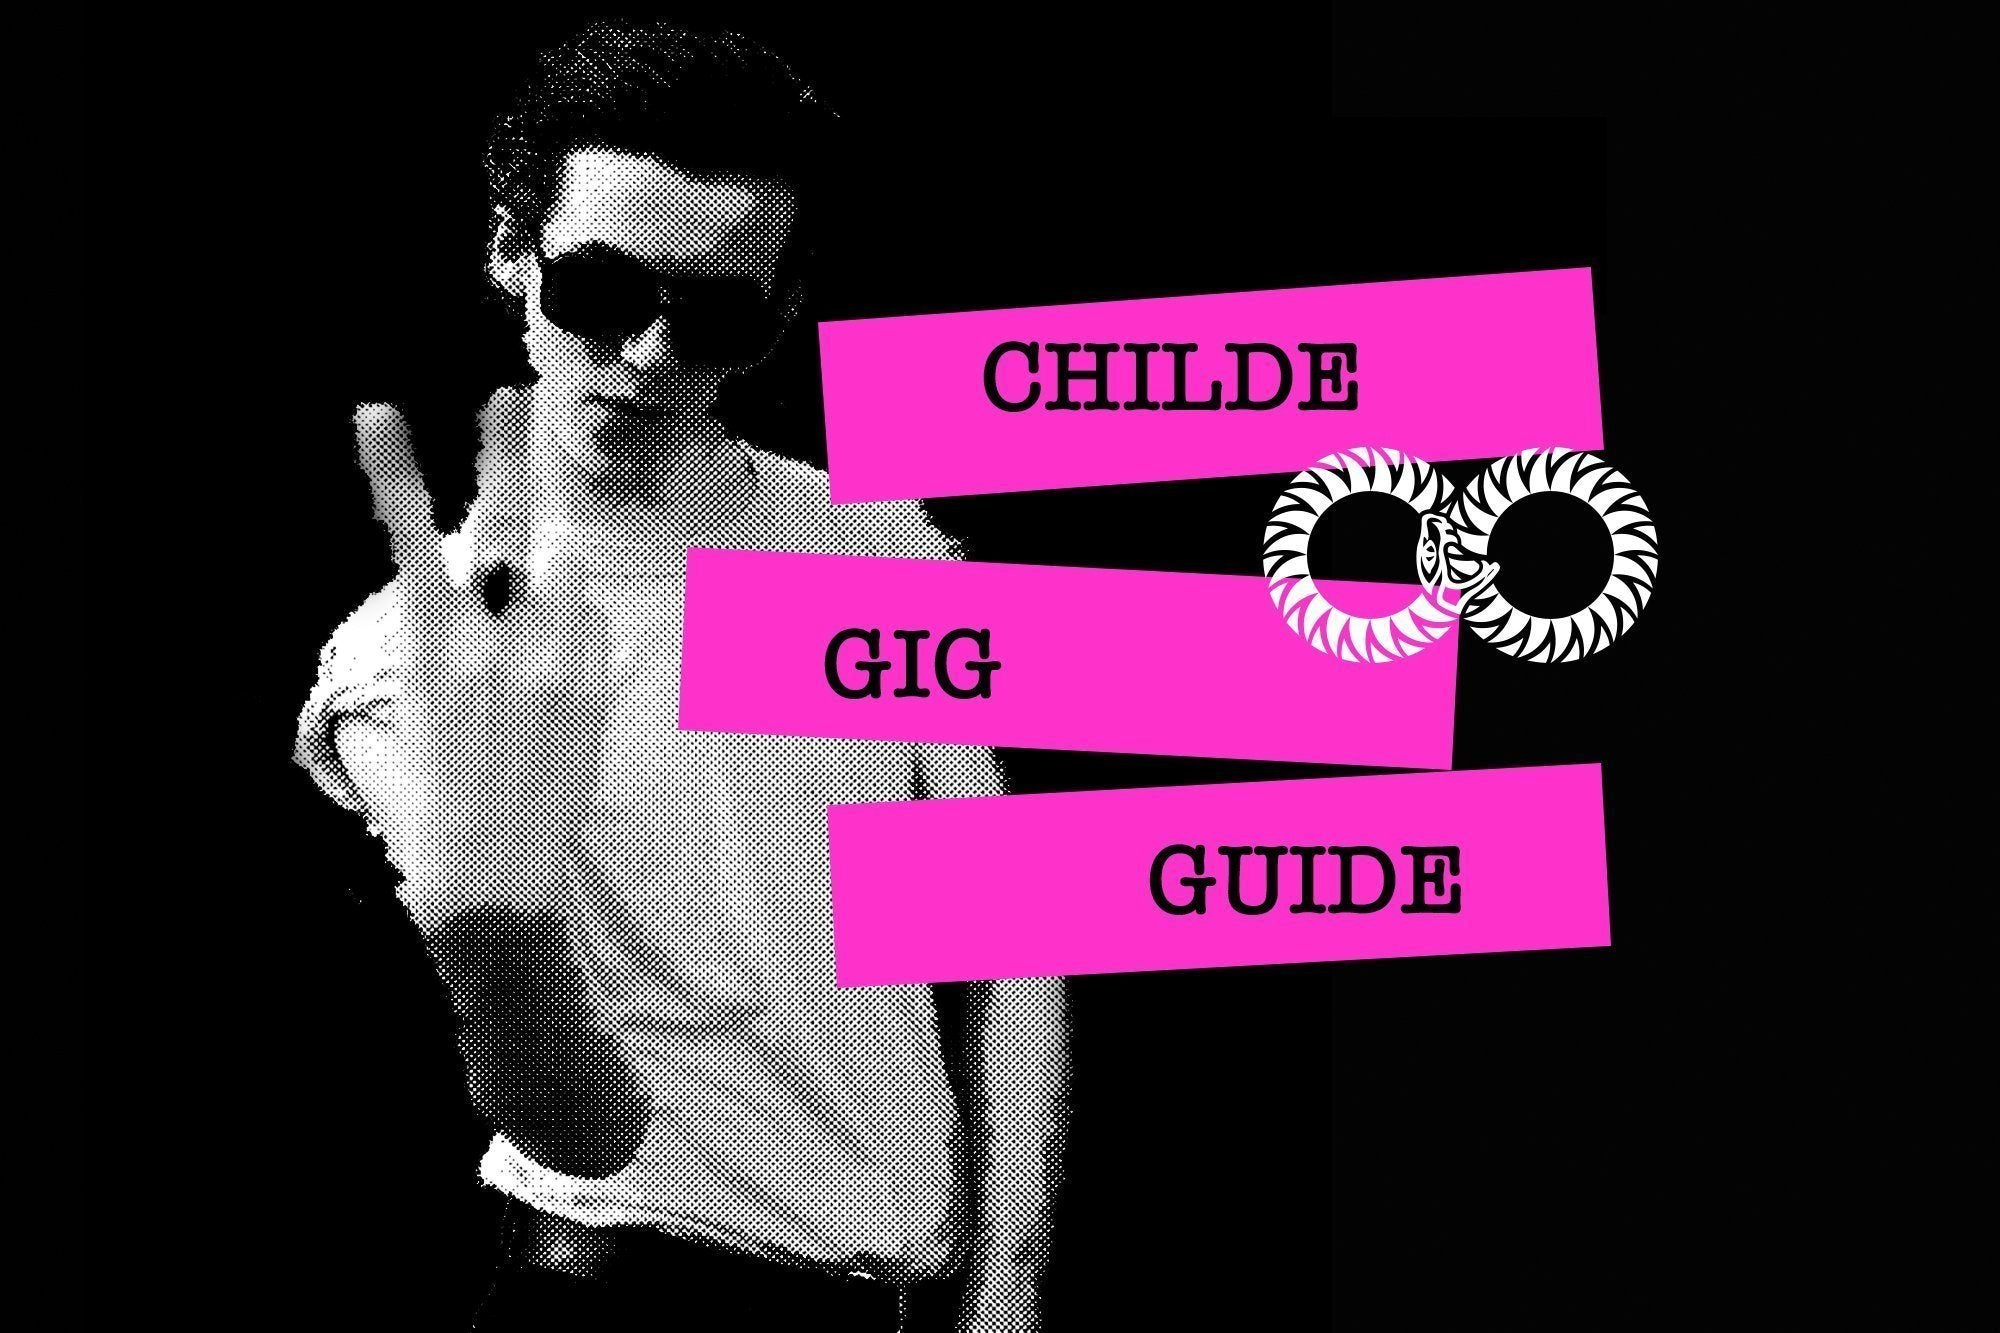 CHILDE GIG GUIDE